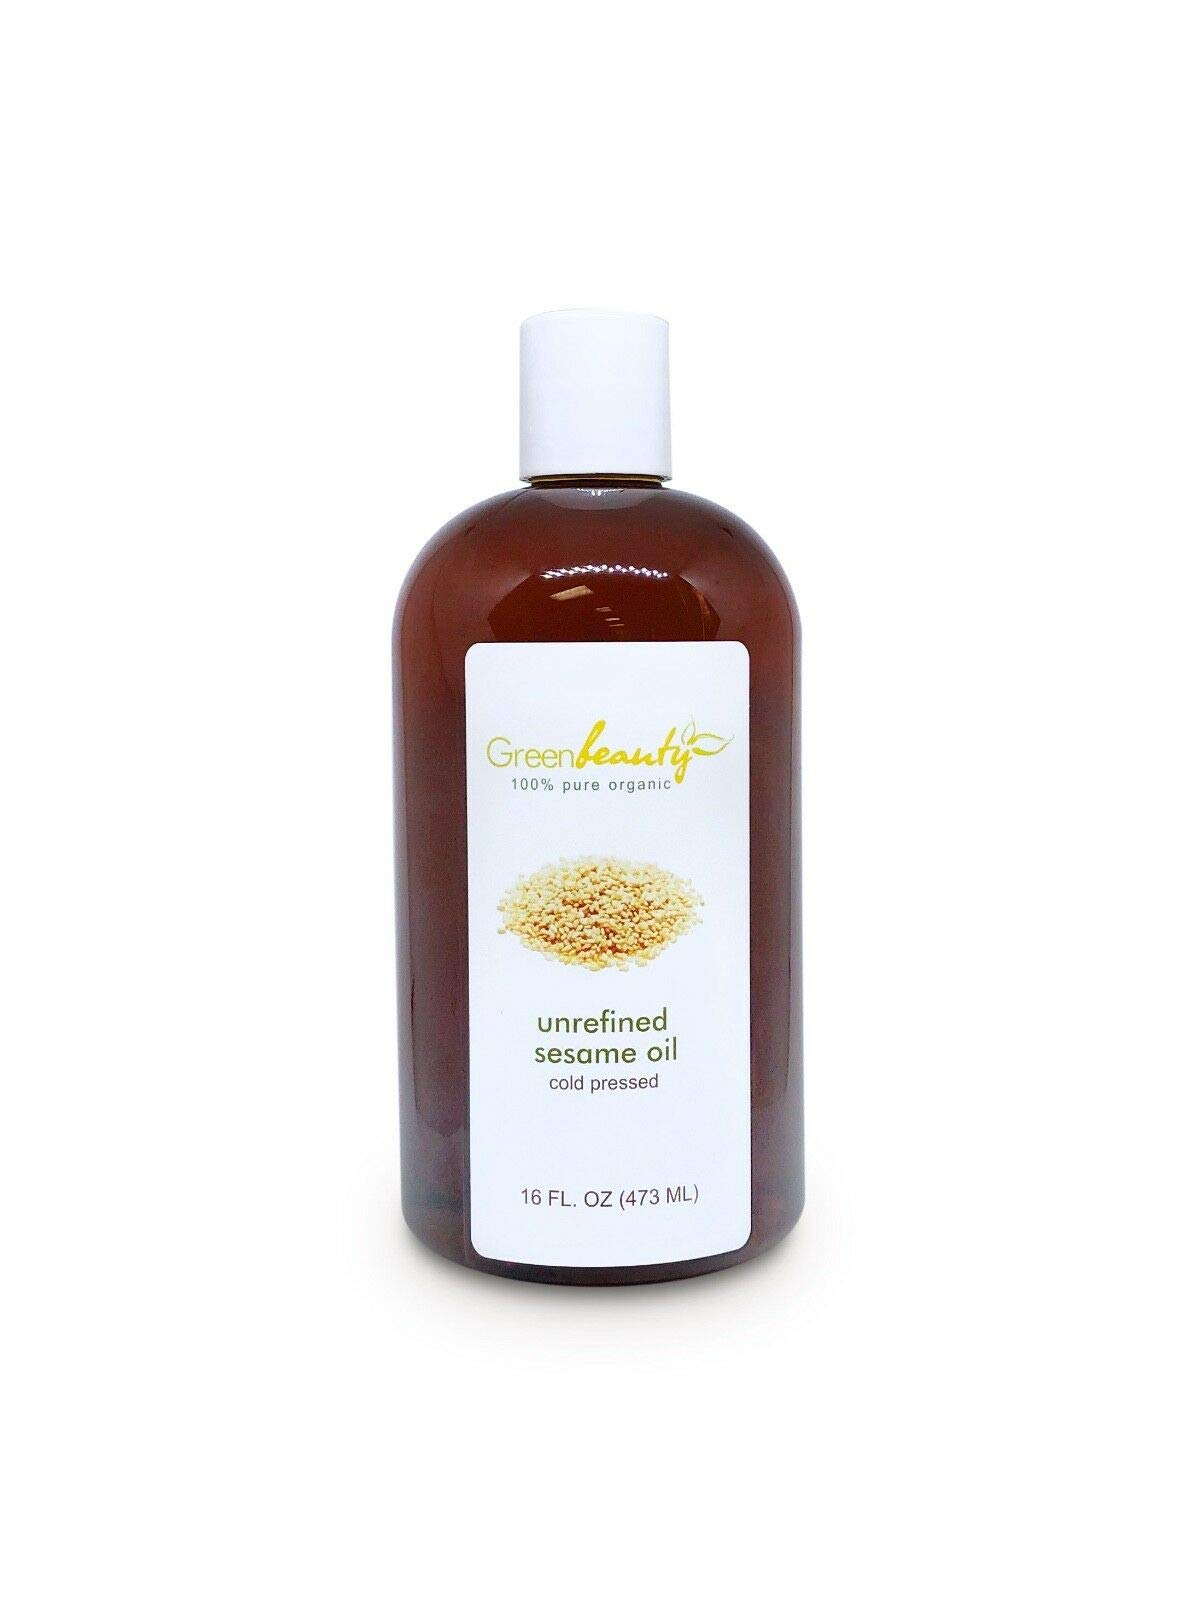 SESAME OIL UNREFINED VIRGIN ORGANIC CARRIER RAW COLD PRESSED 4 OZ TO 1 GALLON by Soapeauty